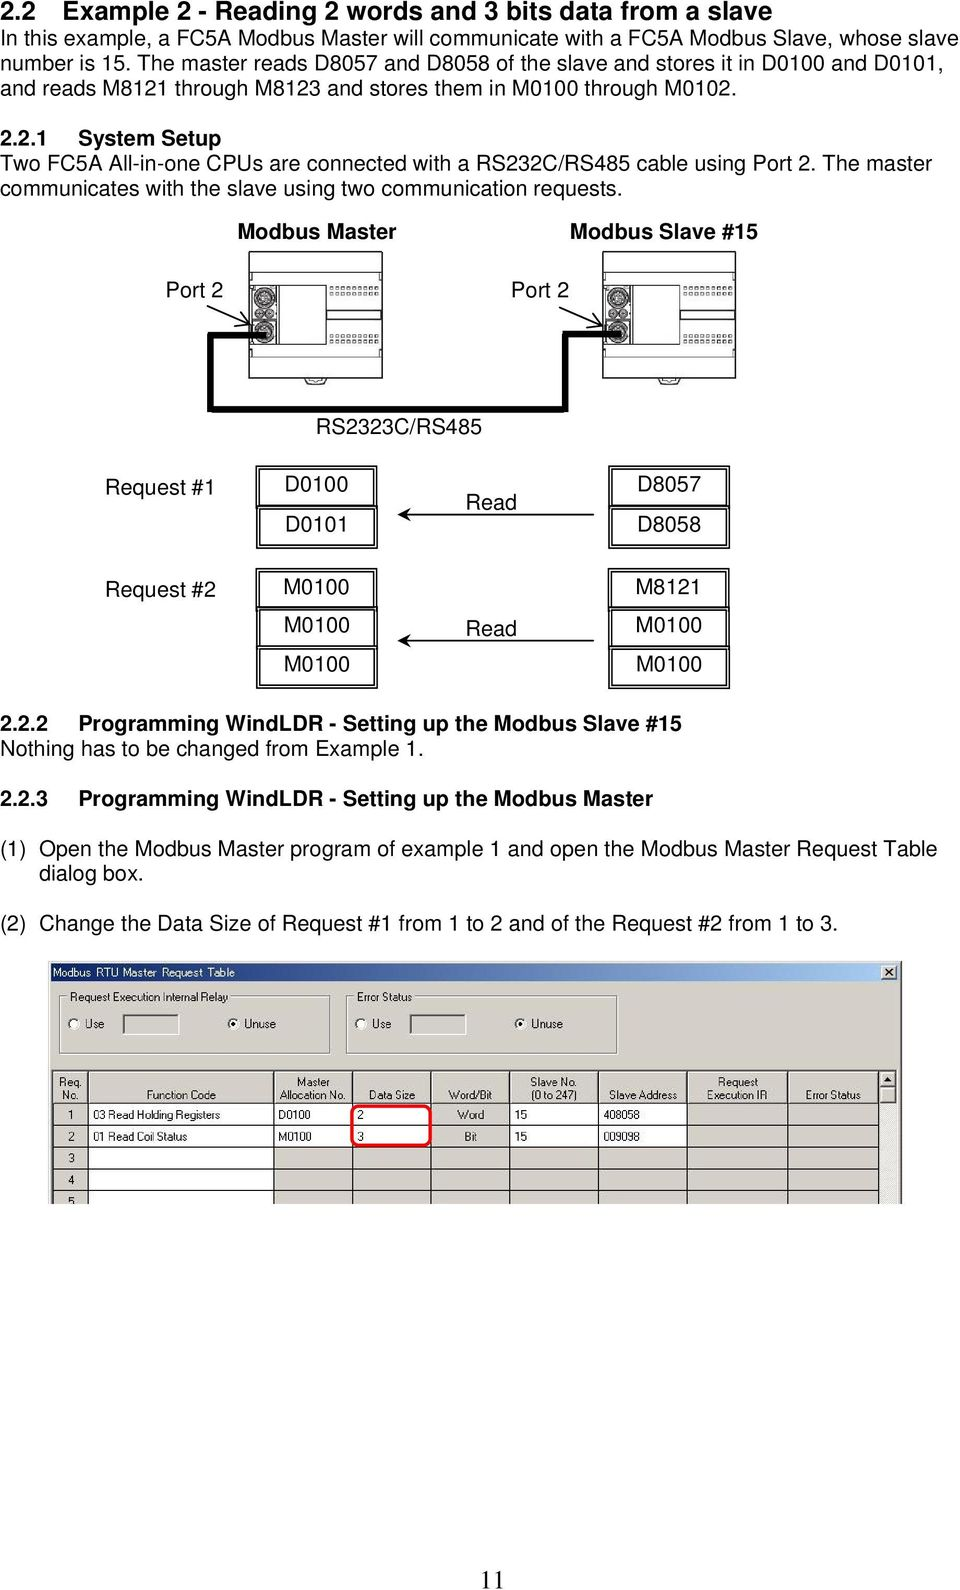 FC5A Modbus Communication Training - PDF